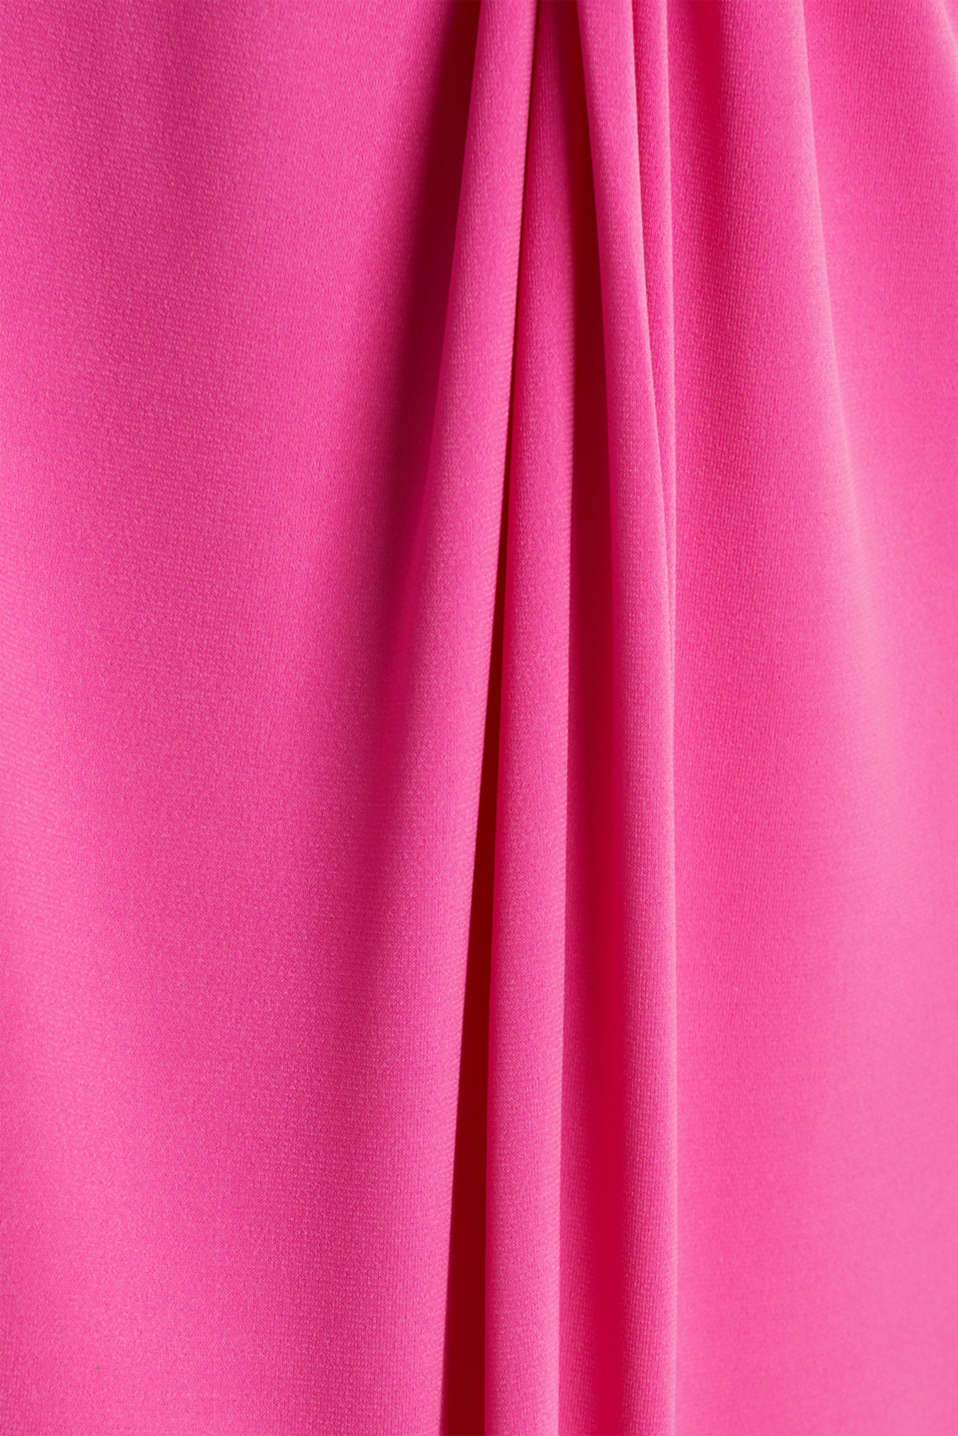 Stretch jersey dress with a draped effect, PINK, detail image number 4